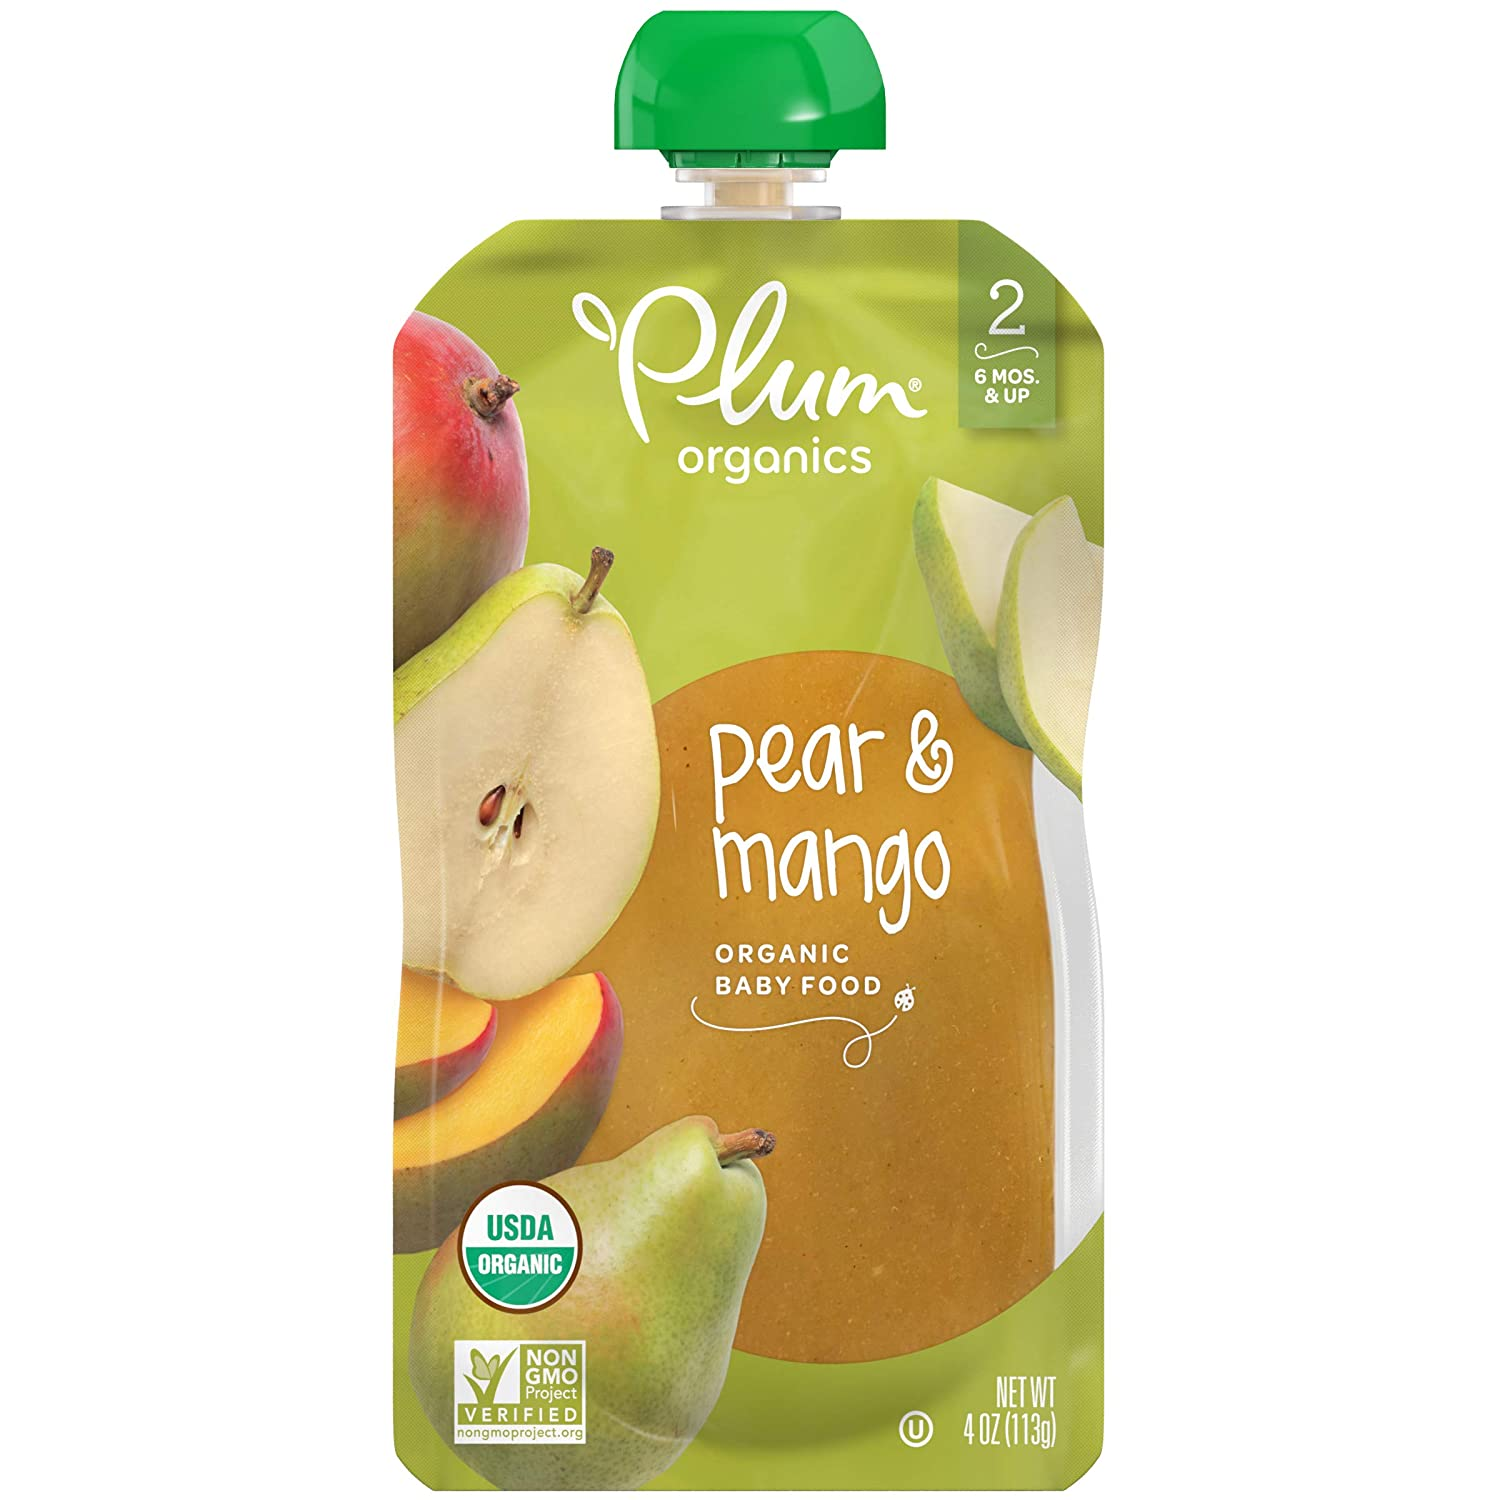 Plum Organics Stage 2, Organic Baby Food, Pear and Mango, 4 Ounce pouches (Pack of 12)